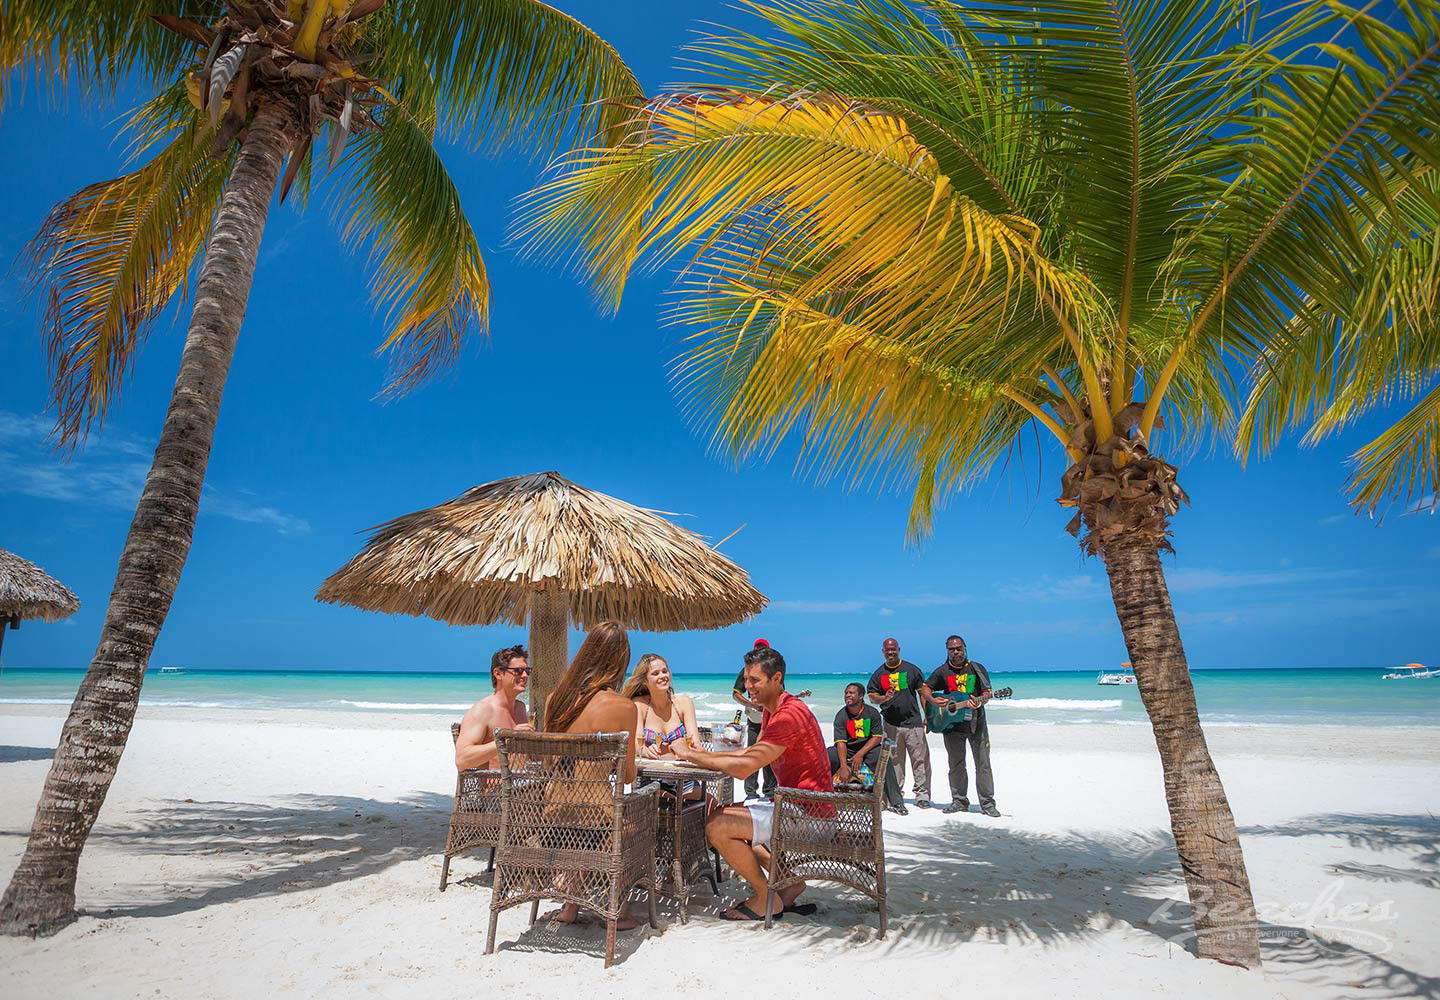 Travel Agency All-Inclusive Resort Beaches Negril 016